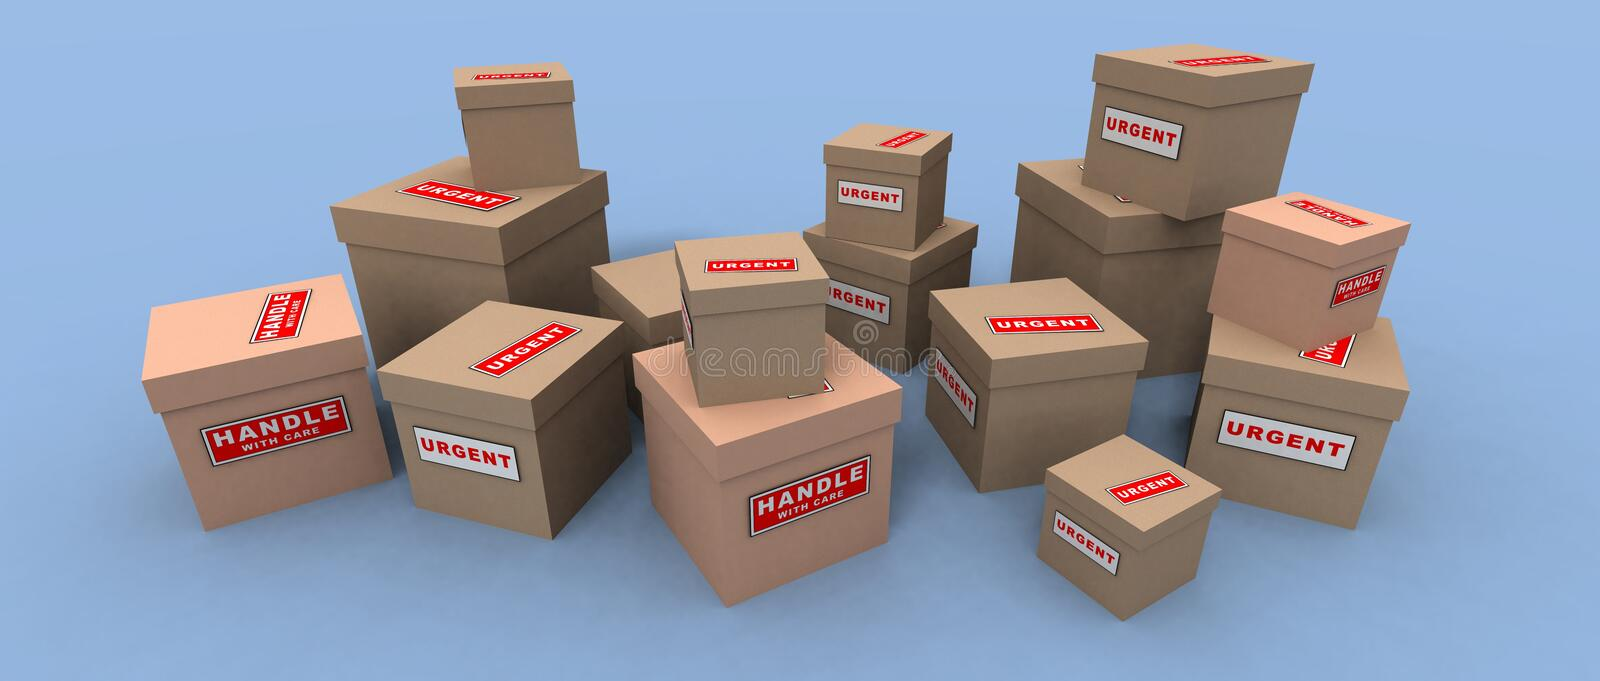 Urgent and fragile packages